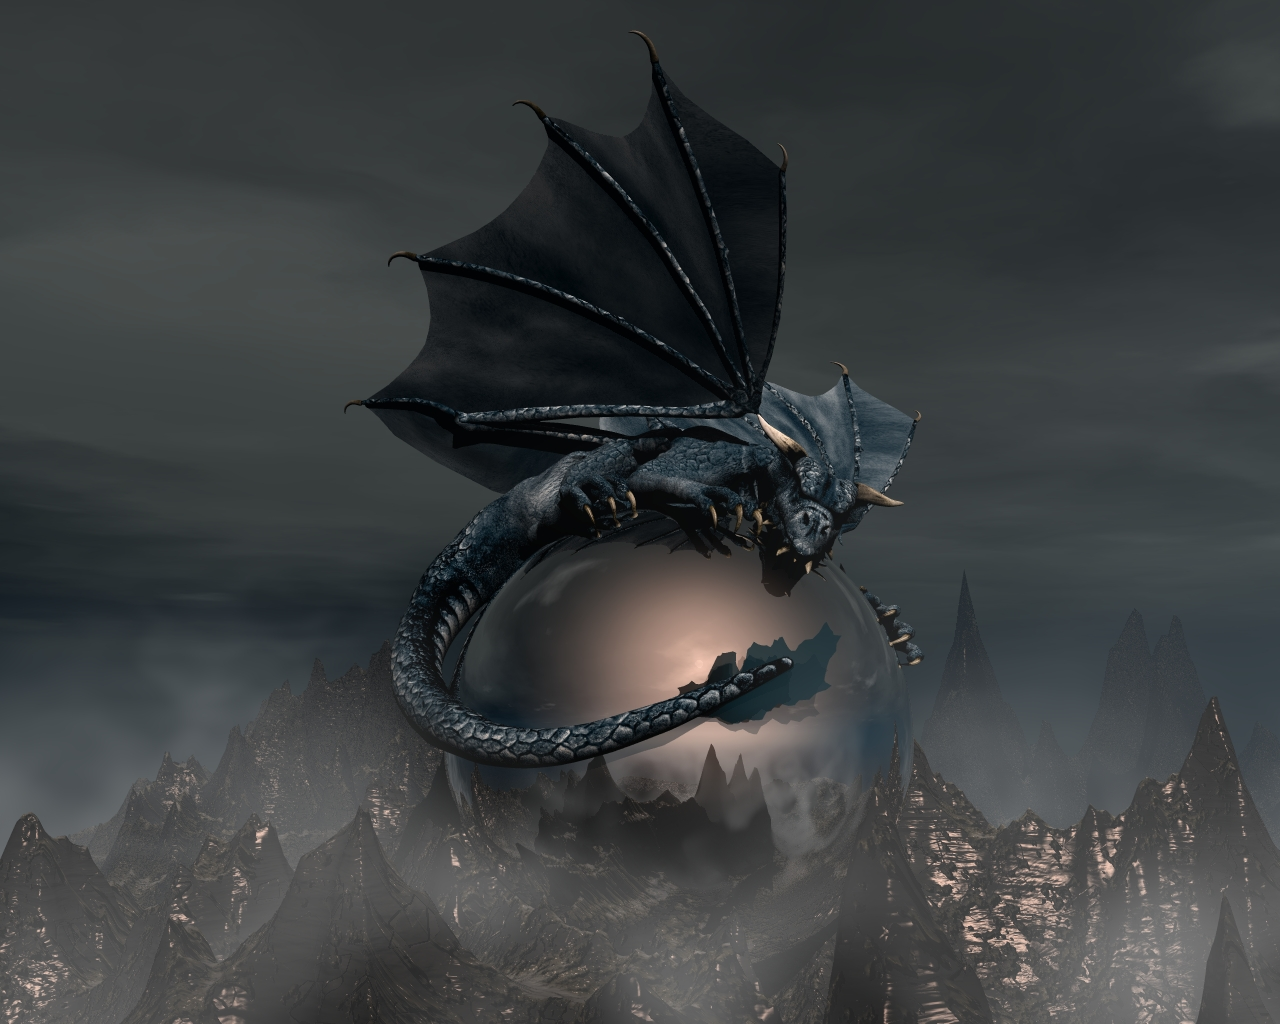 New Gallery of Dragon 3D Wallpaper All Wallpapers are downloaded from 1280x1024